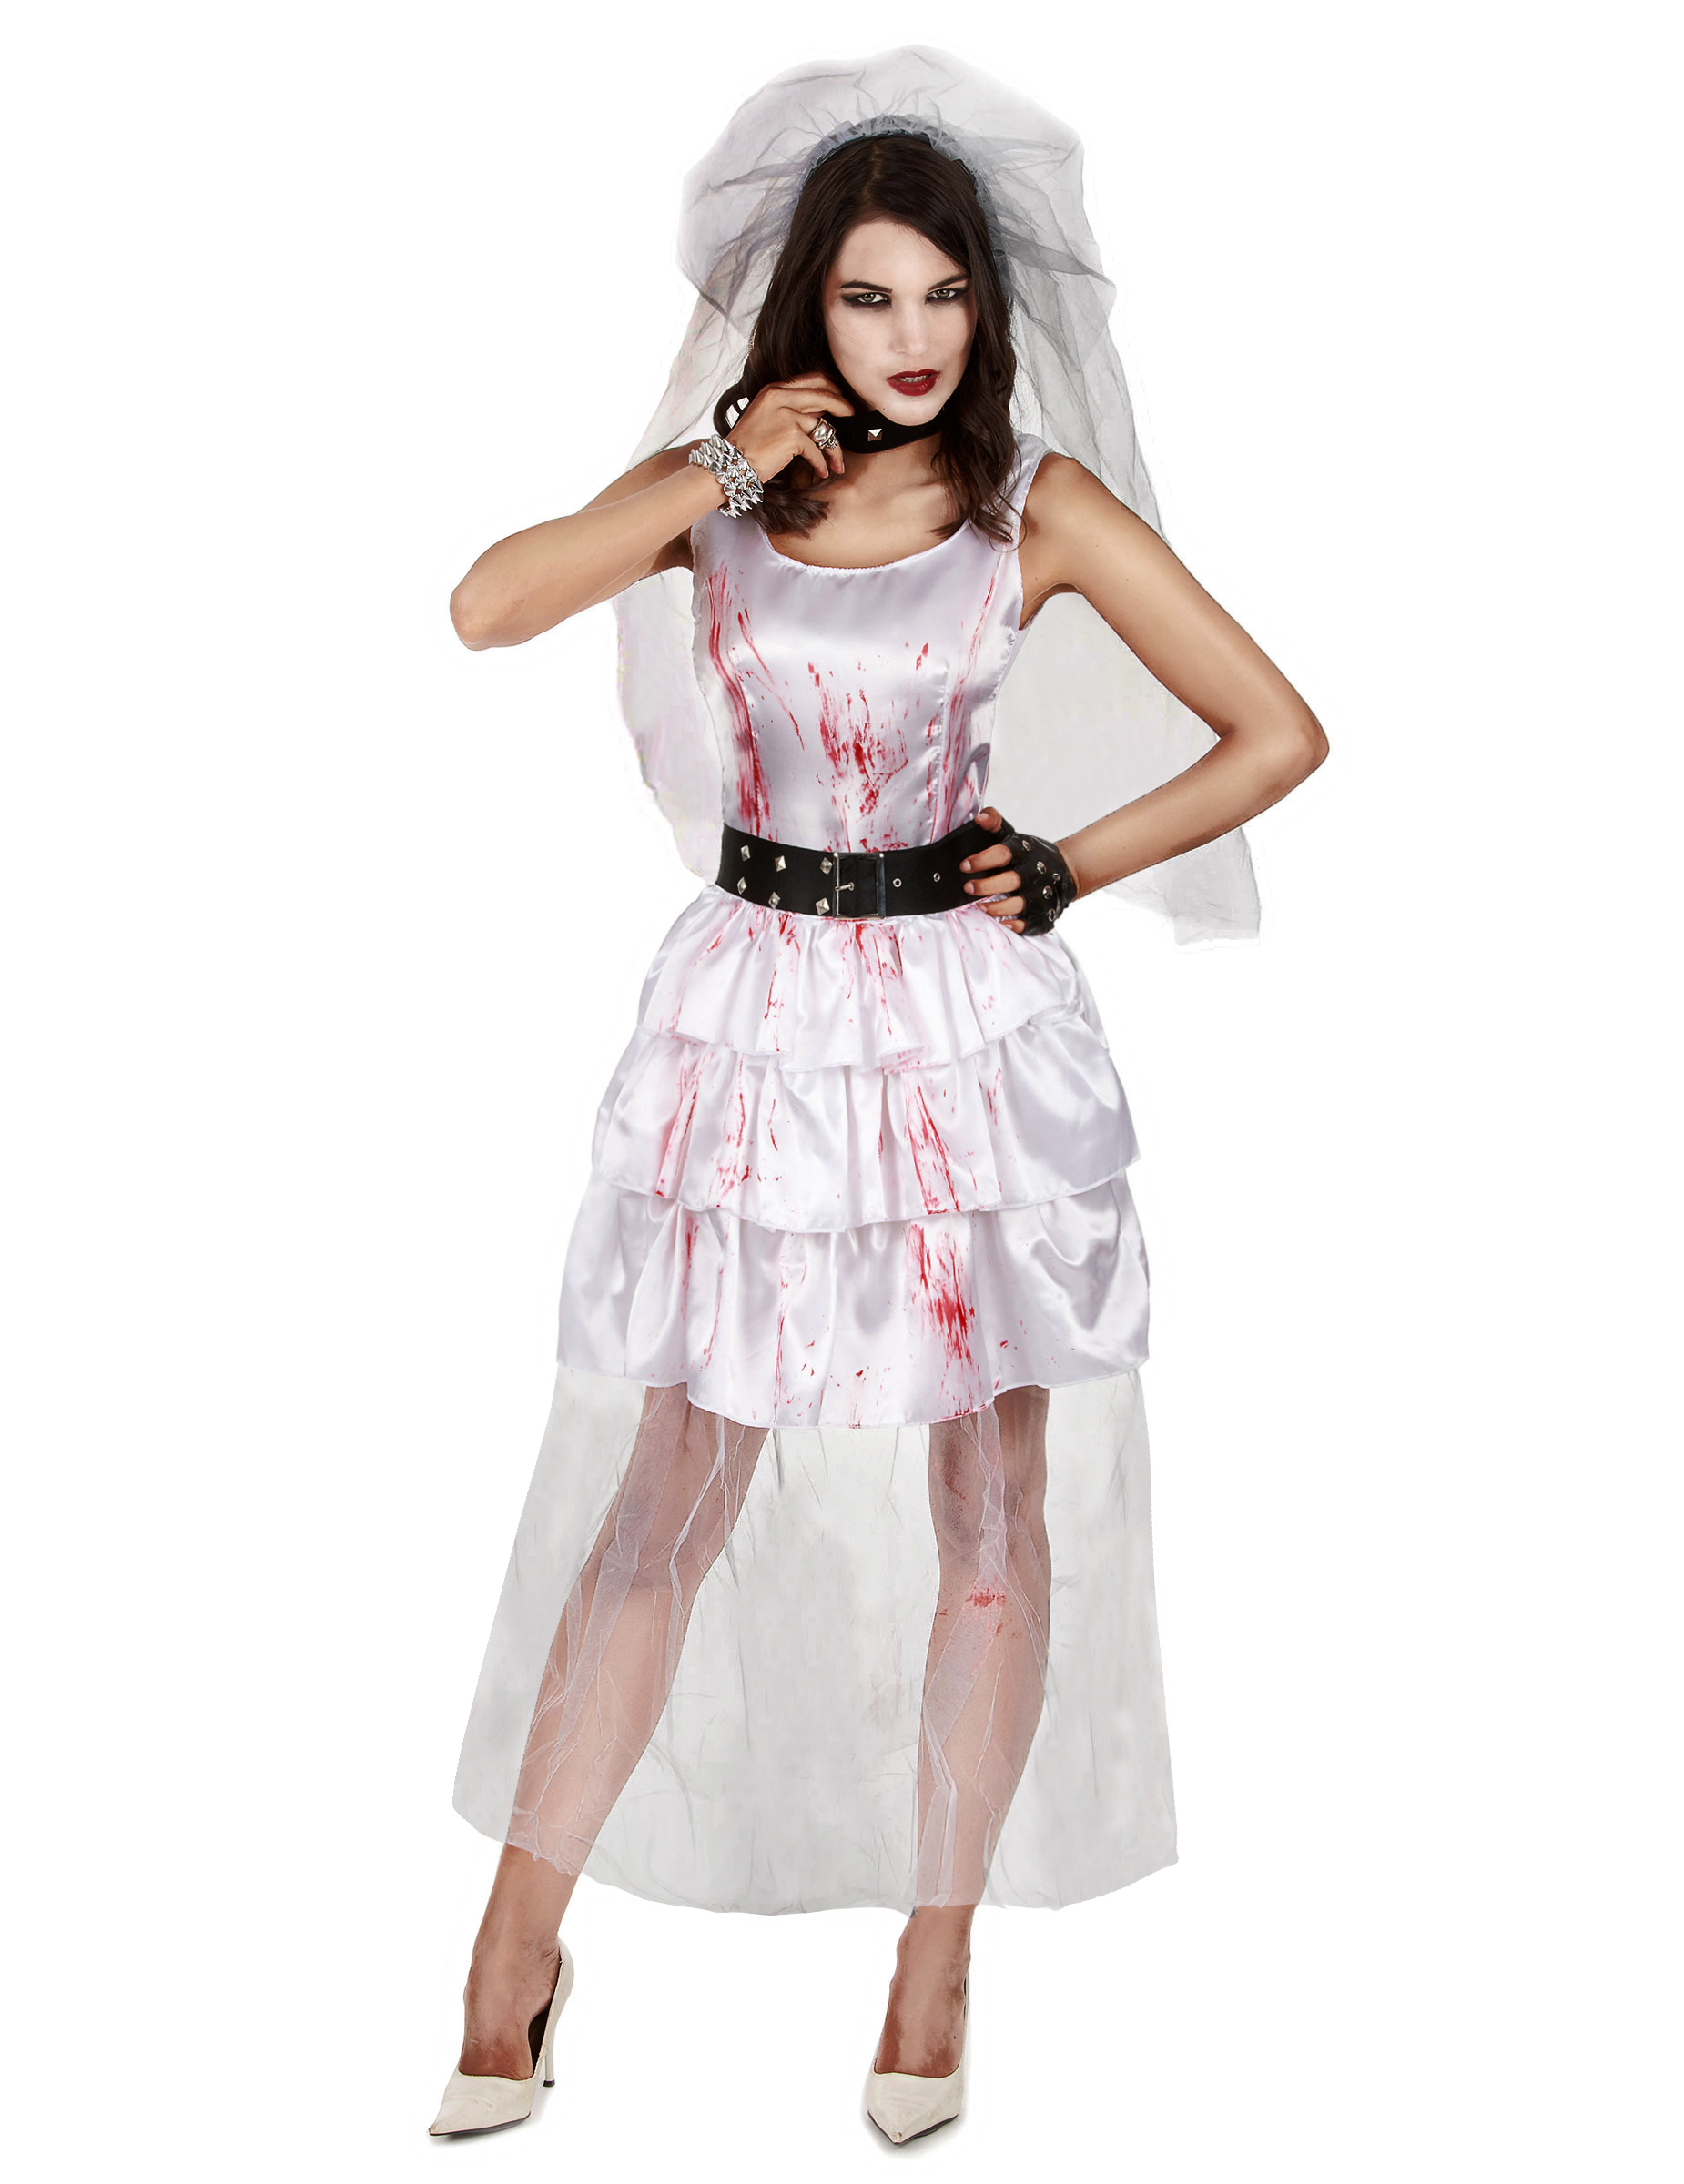 ghost bride costume for halloween